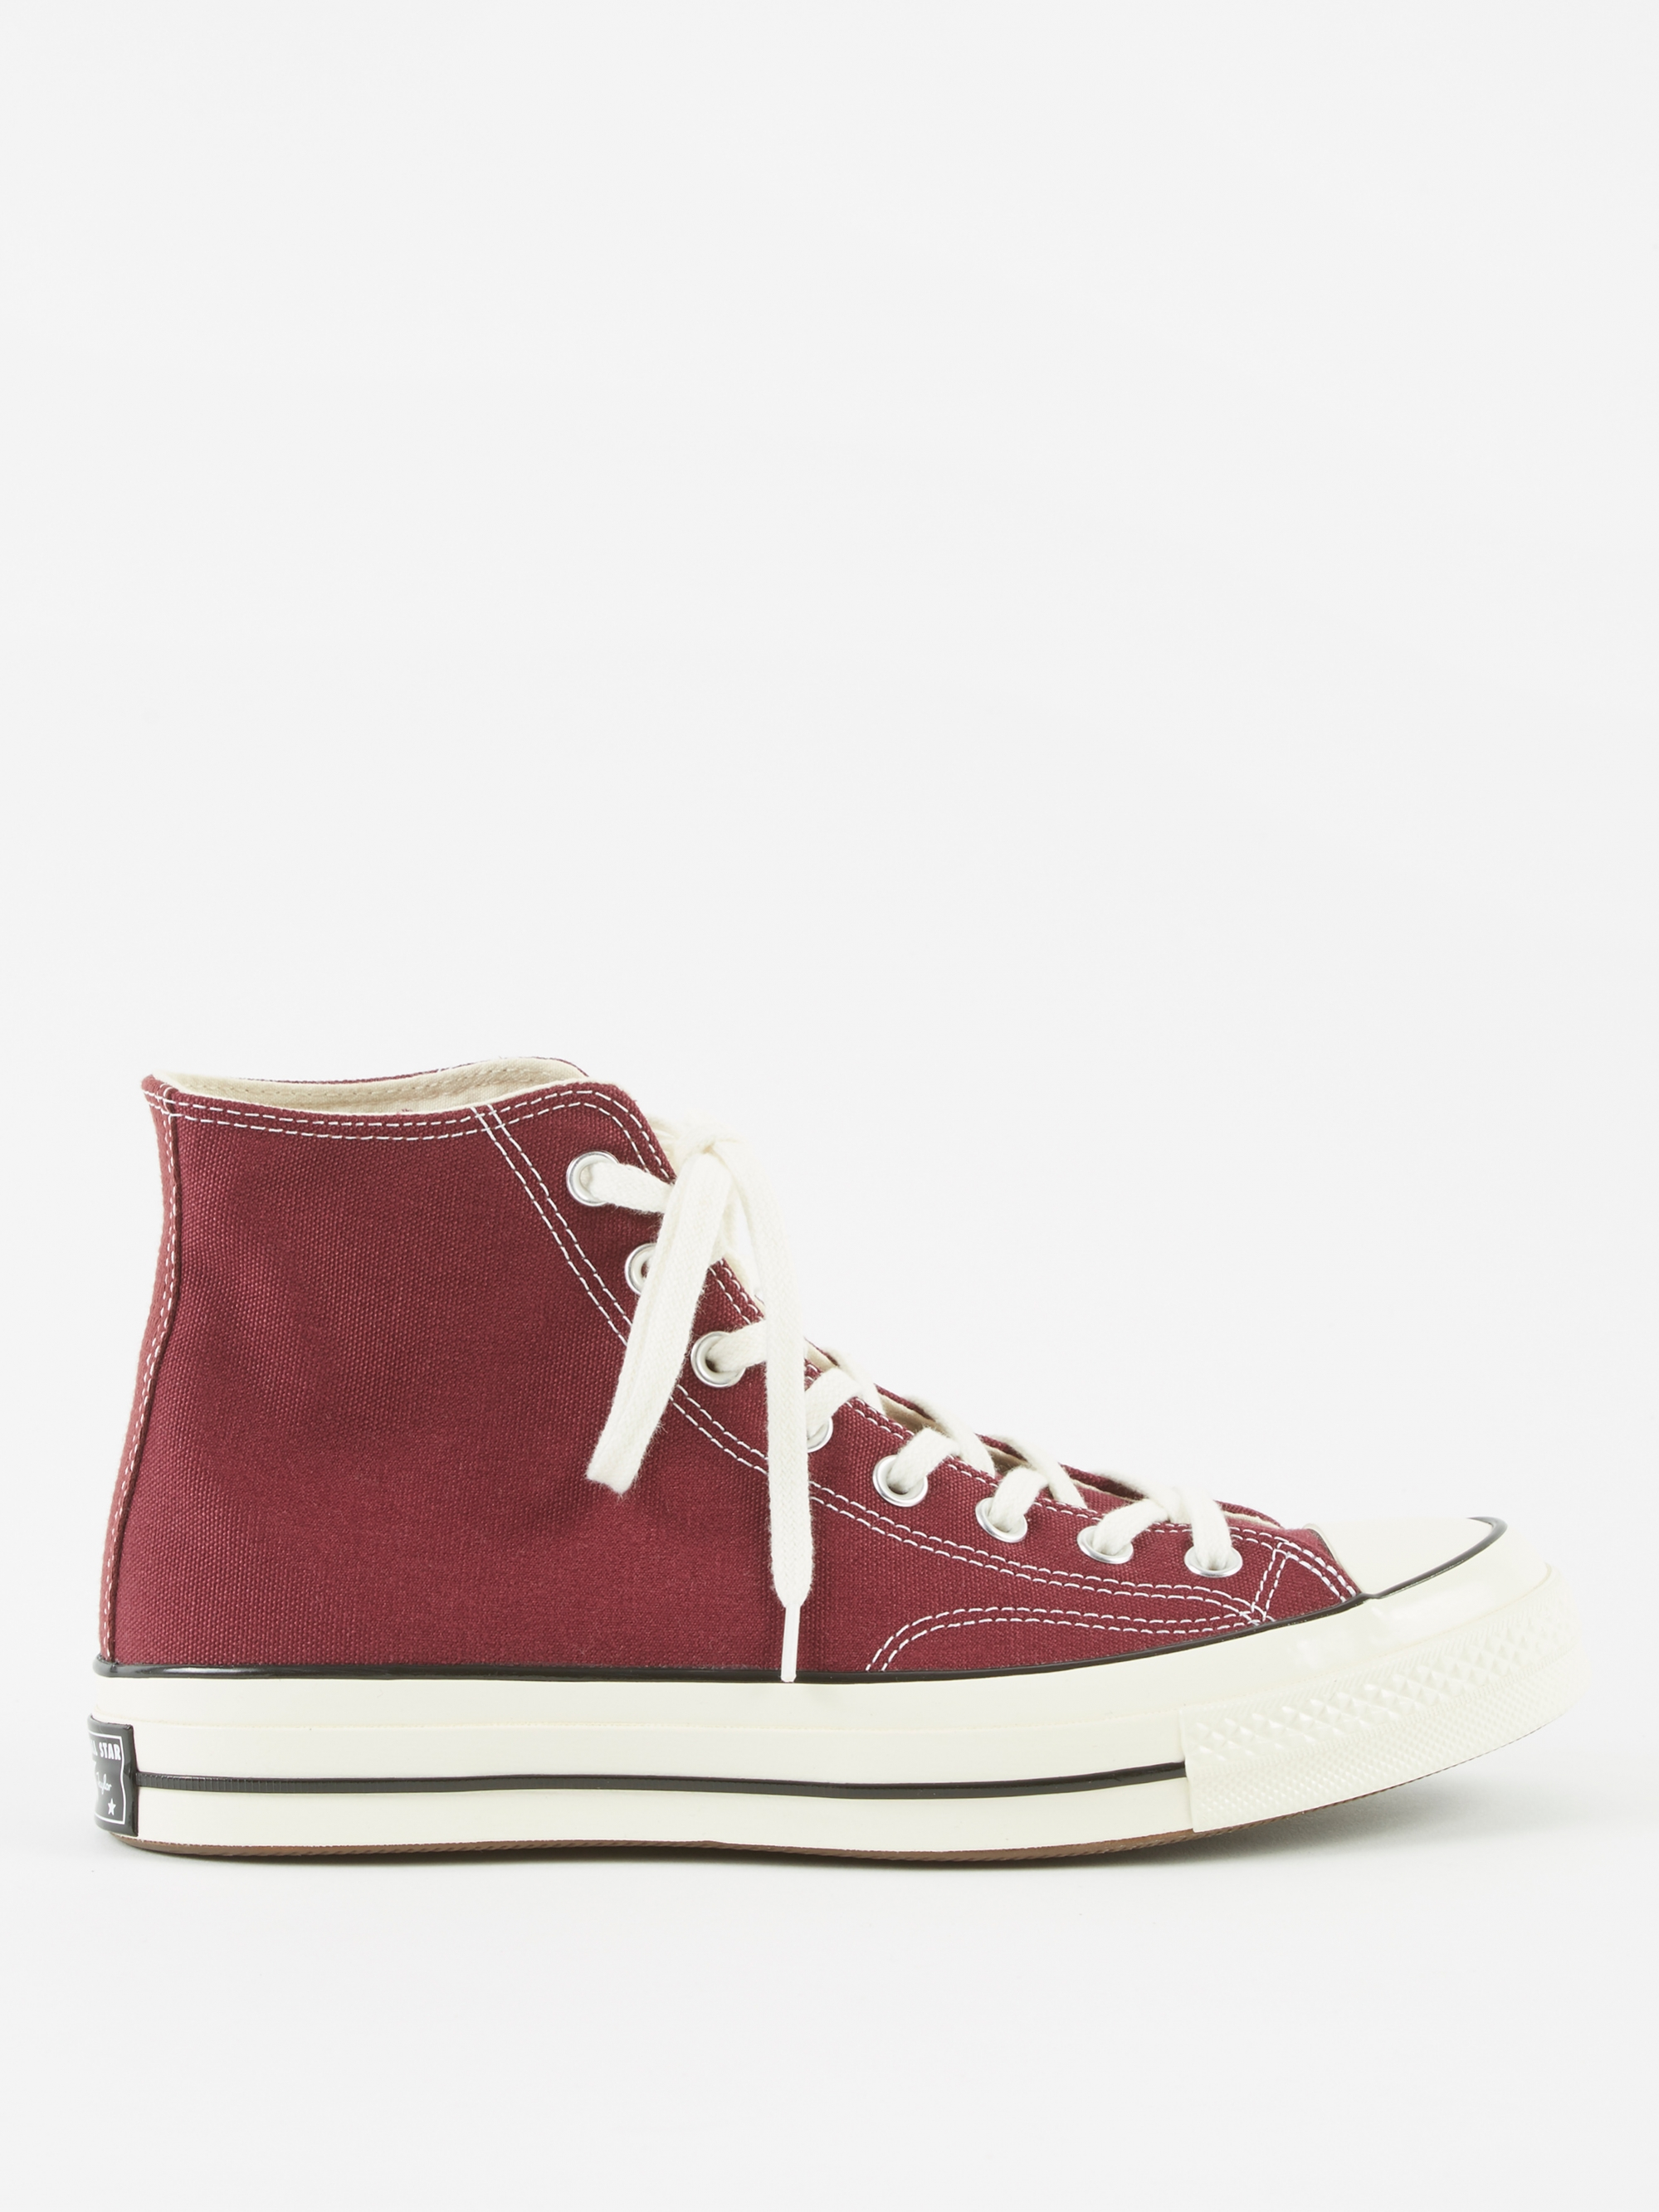 d343c596740dbd Converse Chuck Taylor All Star 70 Hi - Dark Burgundy Black Egret